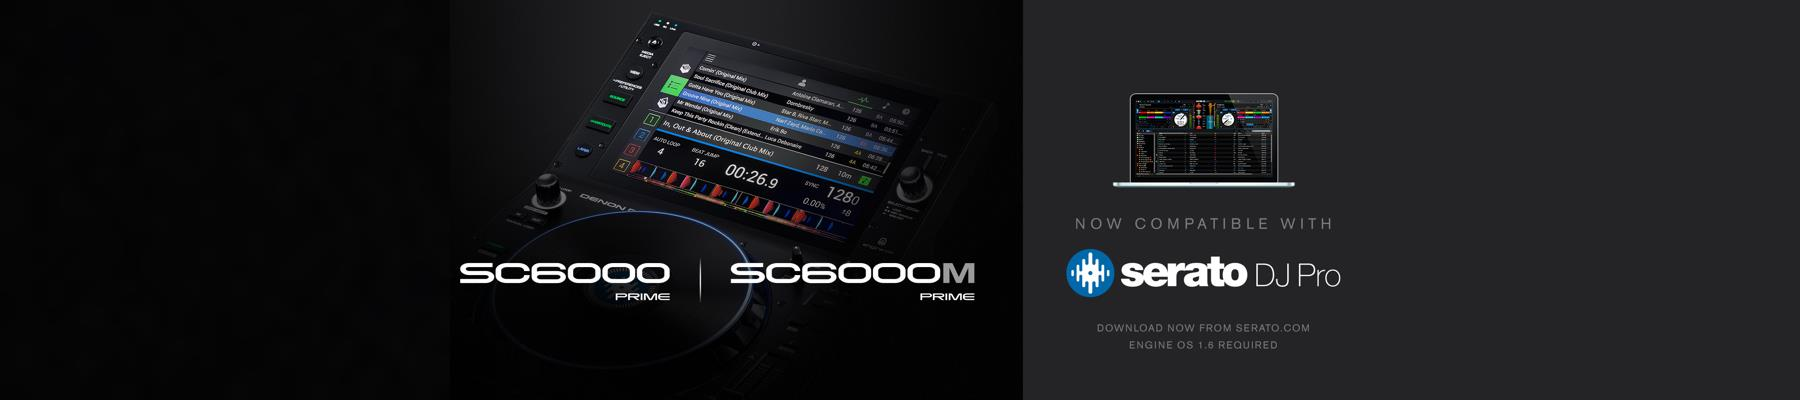 Serato DJ Pro Integration for SC6000 and SC6000M